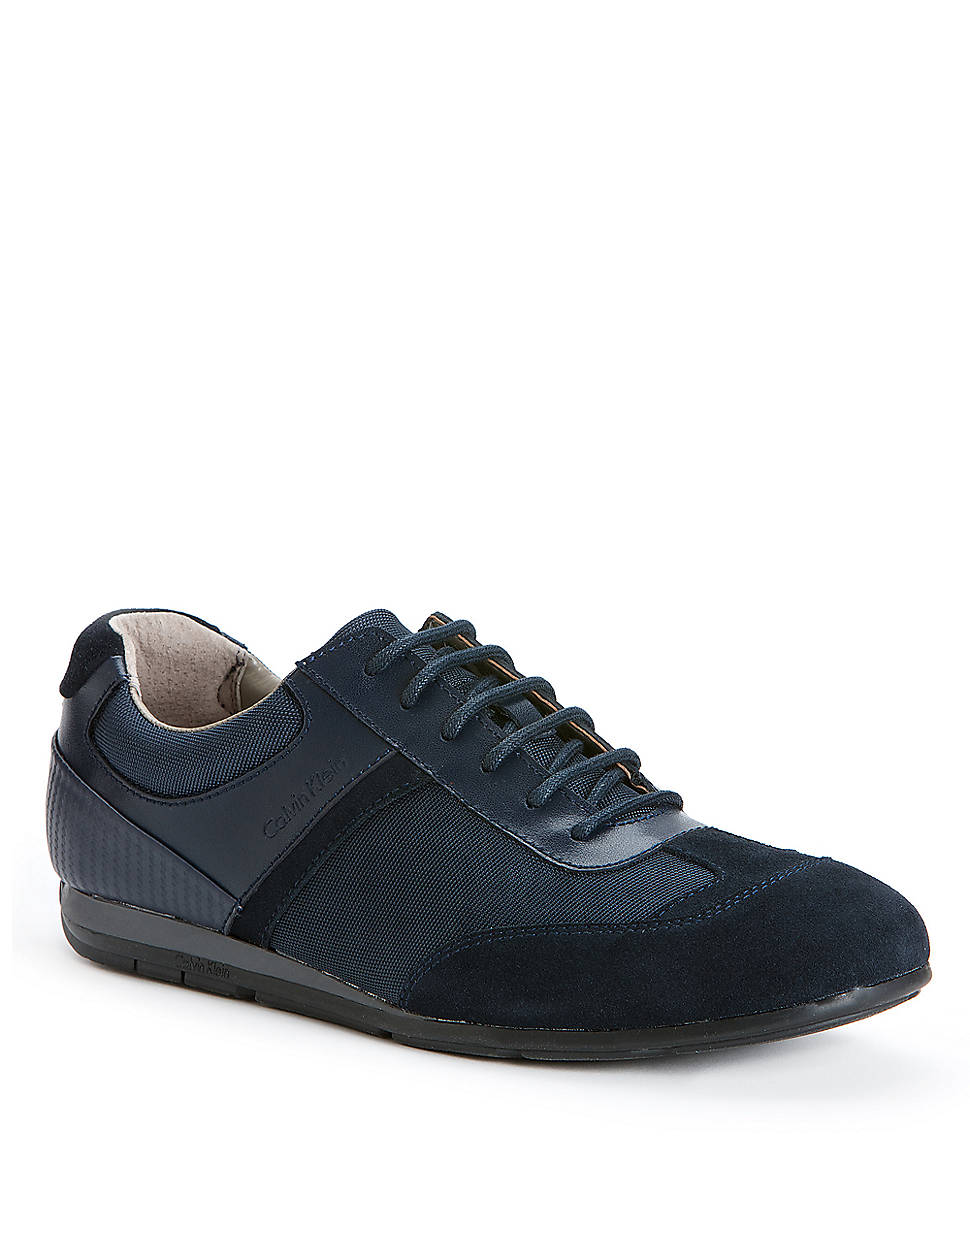 calvin klein kirk leather and suede sneakers in blue for. Black Bedroom Furniture Sets. Home Design Ideas